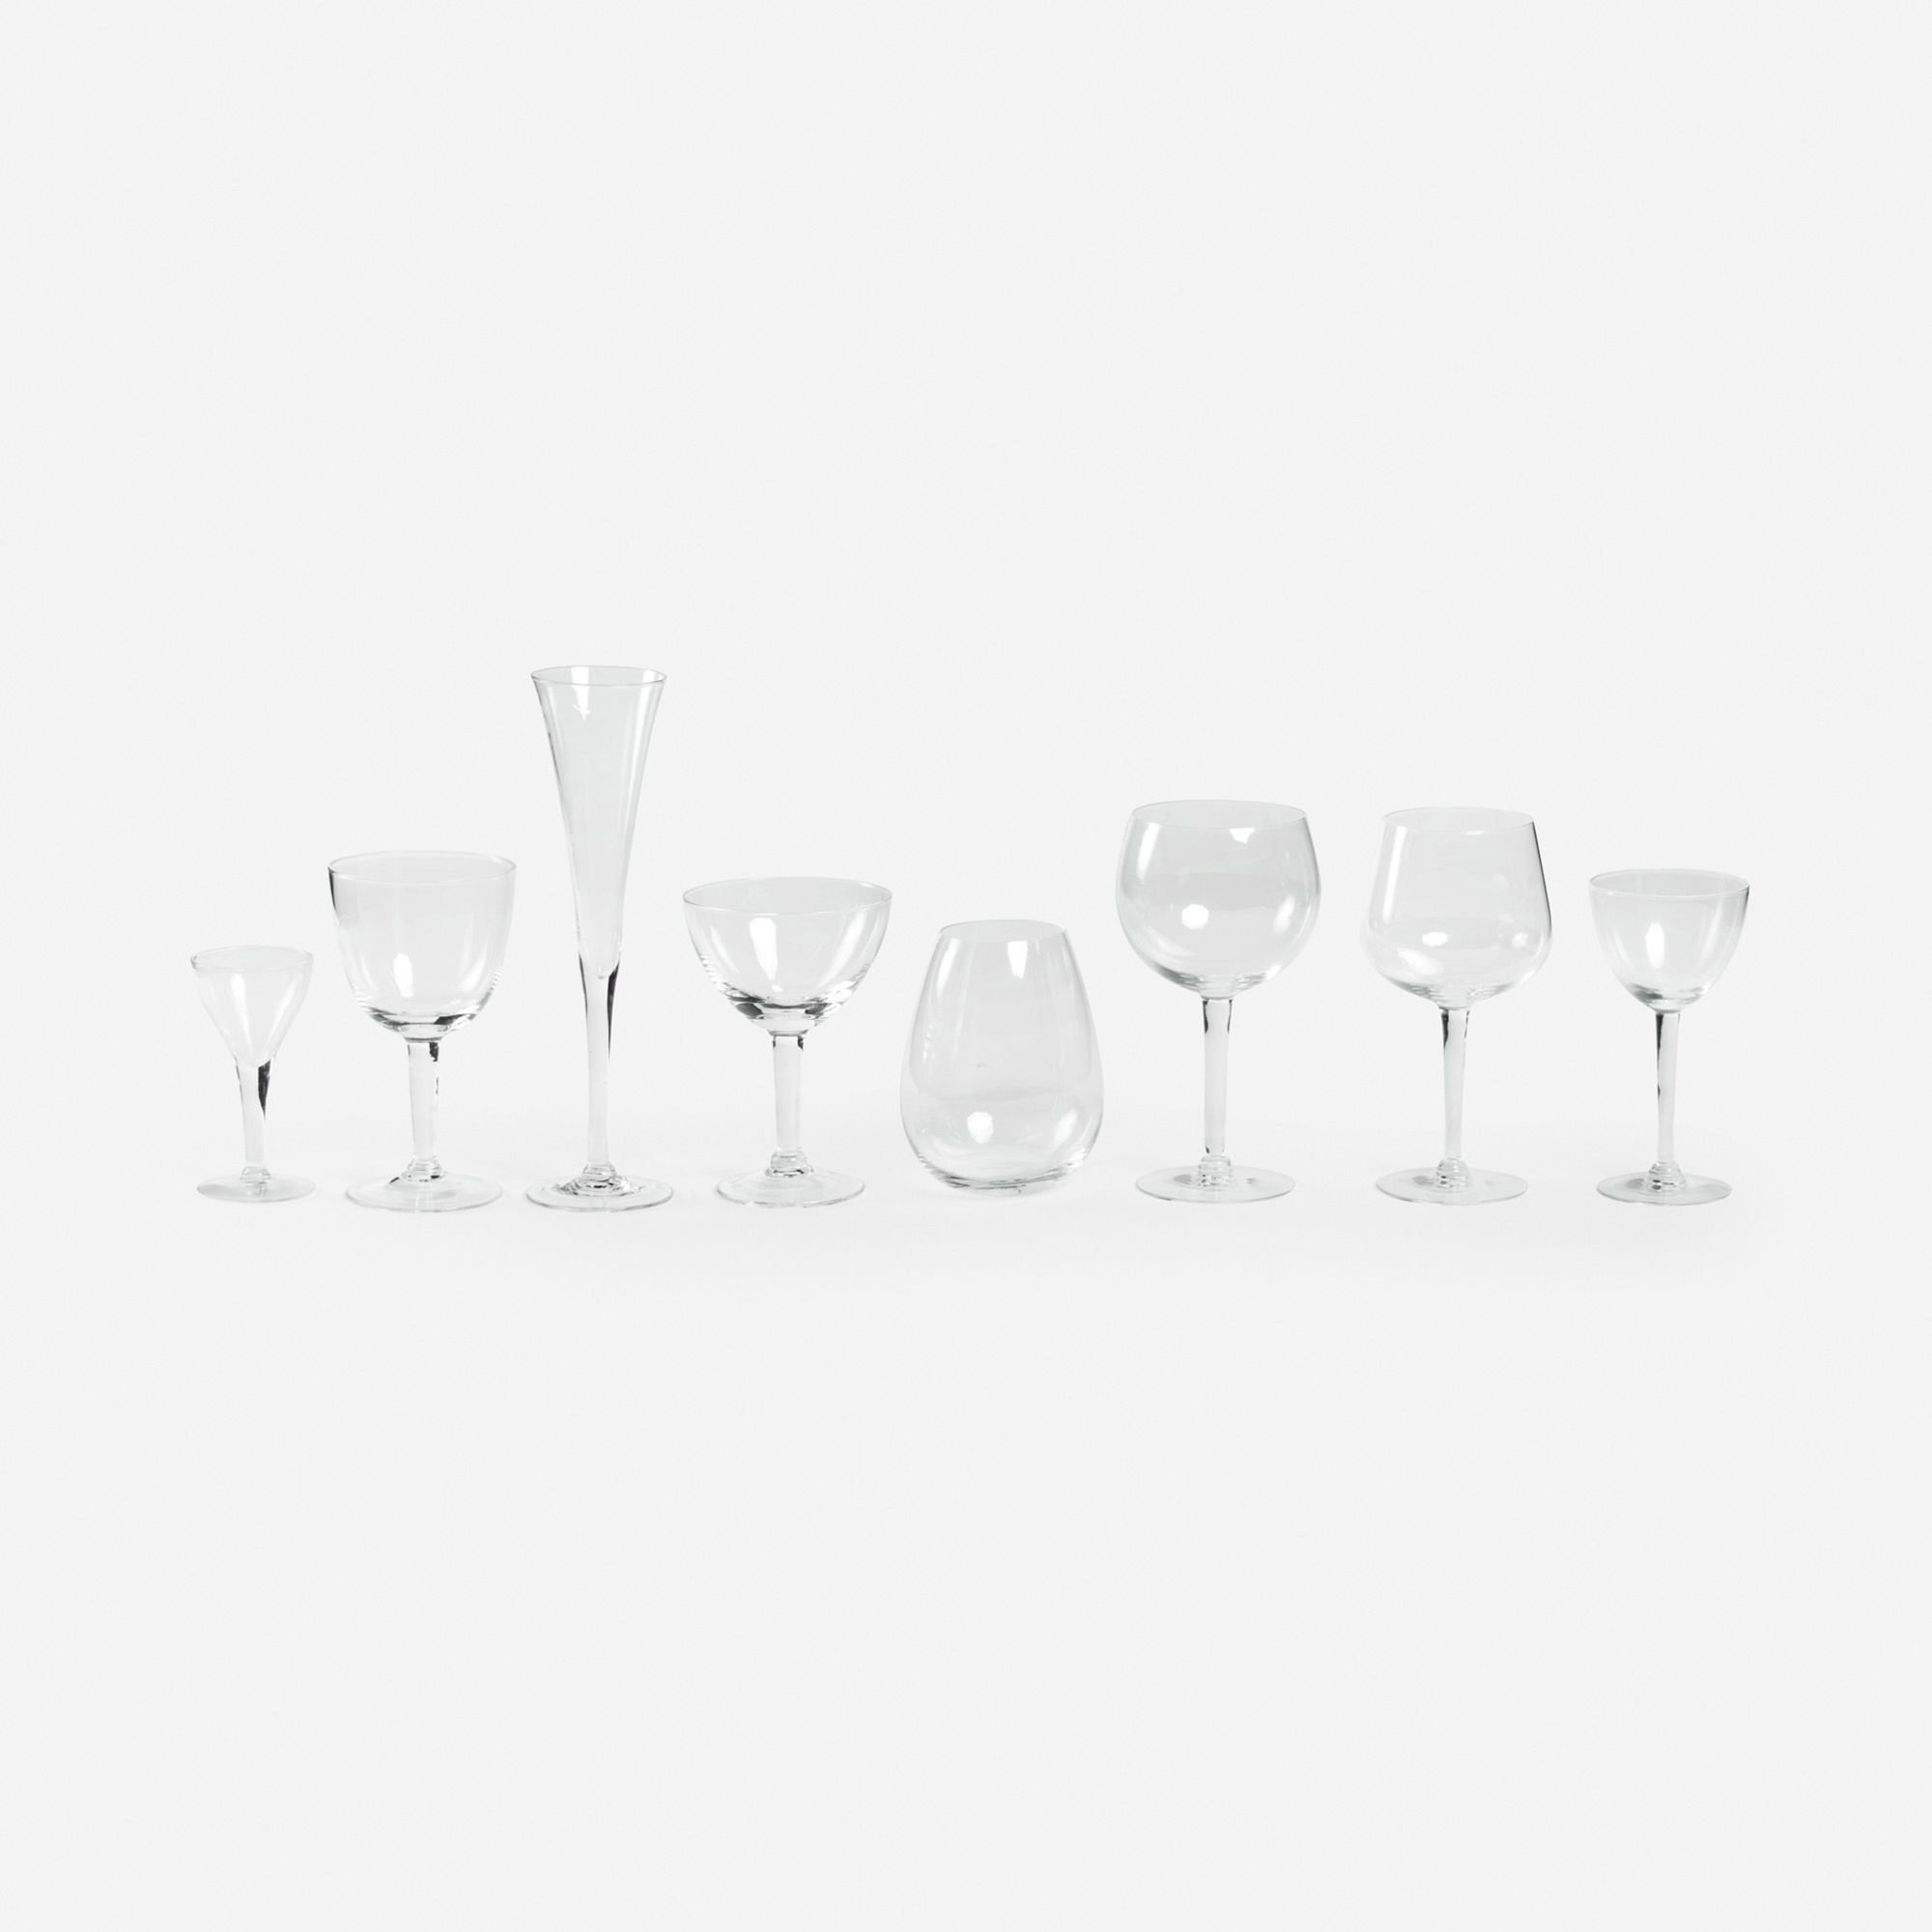 316: Garth and Ada Louise Huxtable / Stemware Collection from The Four Seasons, service for two (1 of 1)